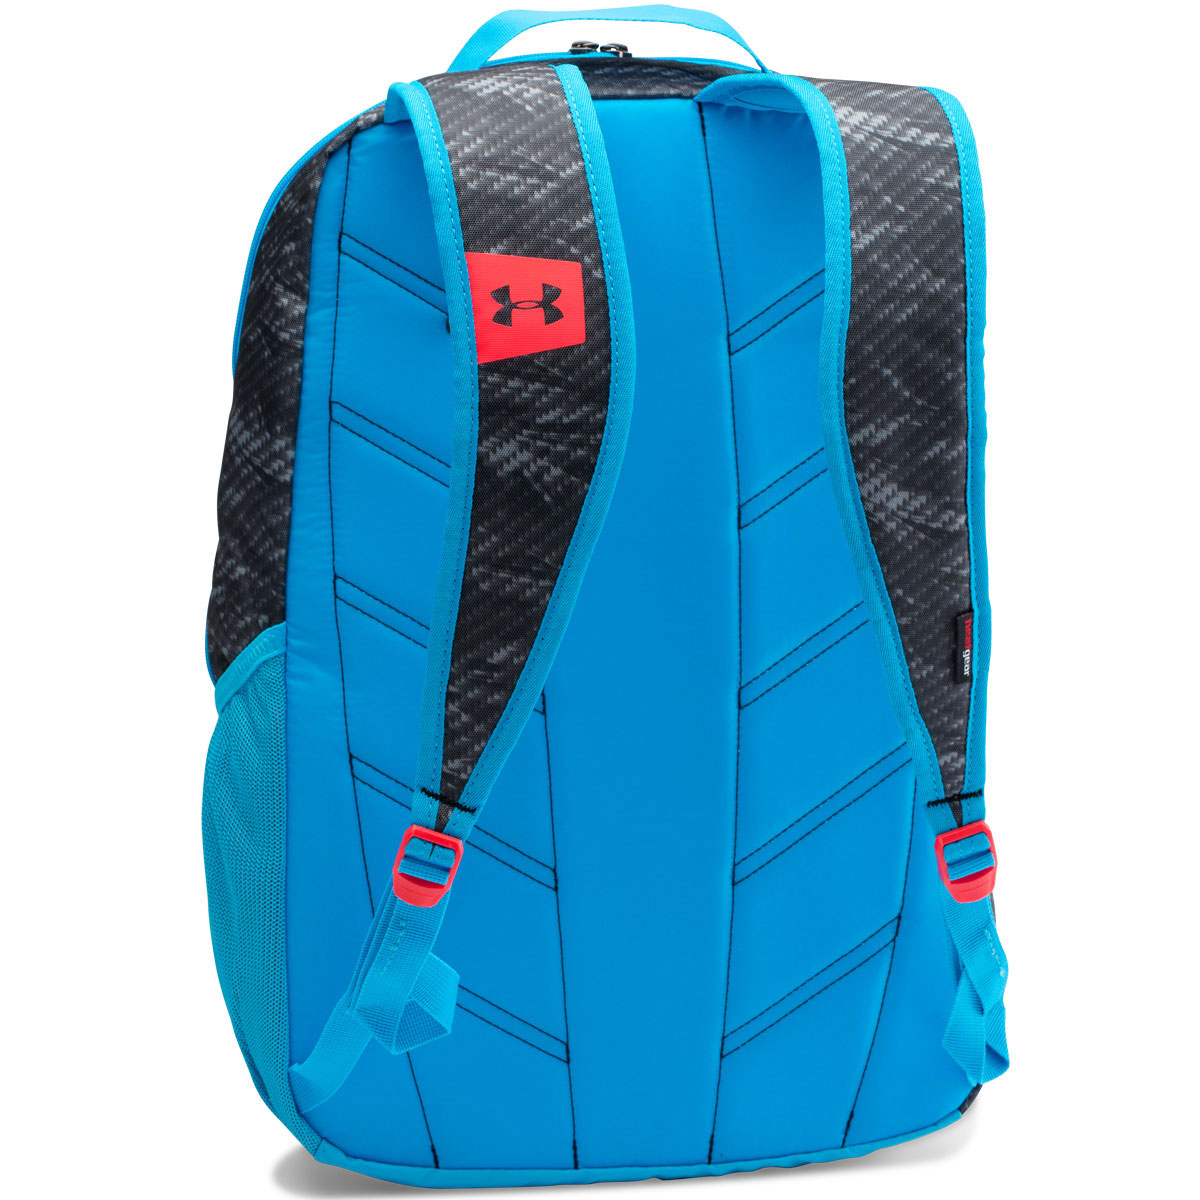 Under Armour 2019 UA Hustle Backpack LDWR Rucksack School Gym Bag  1ecd6abe3aee3